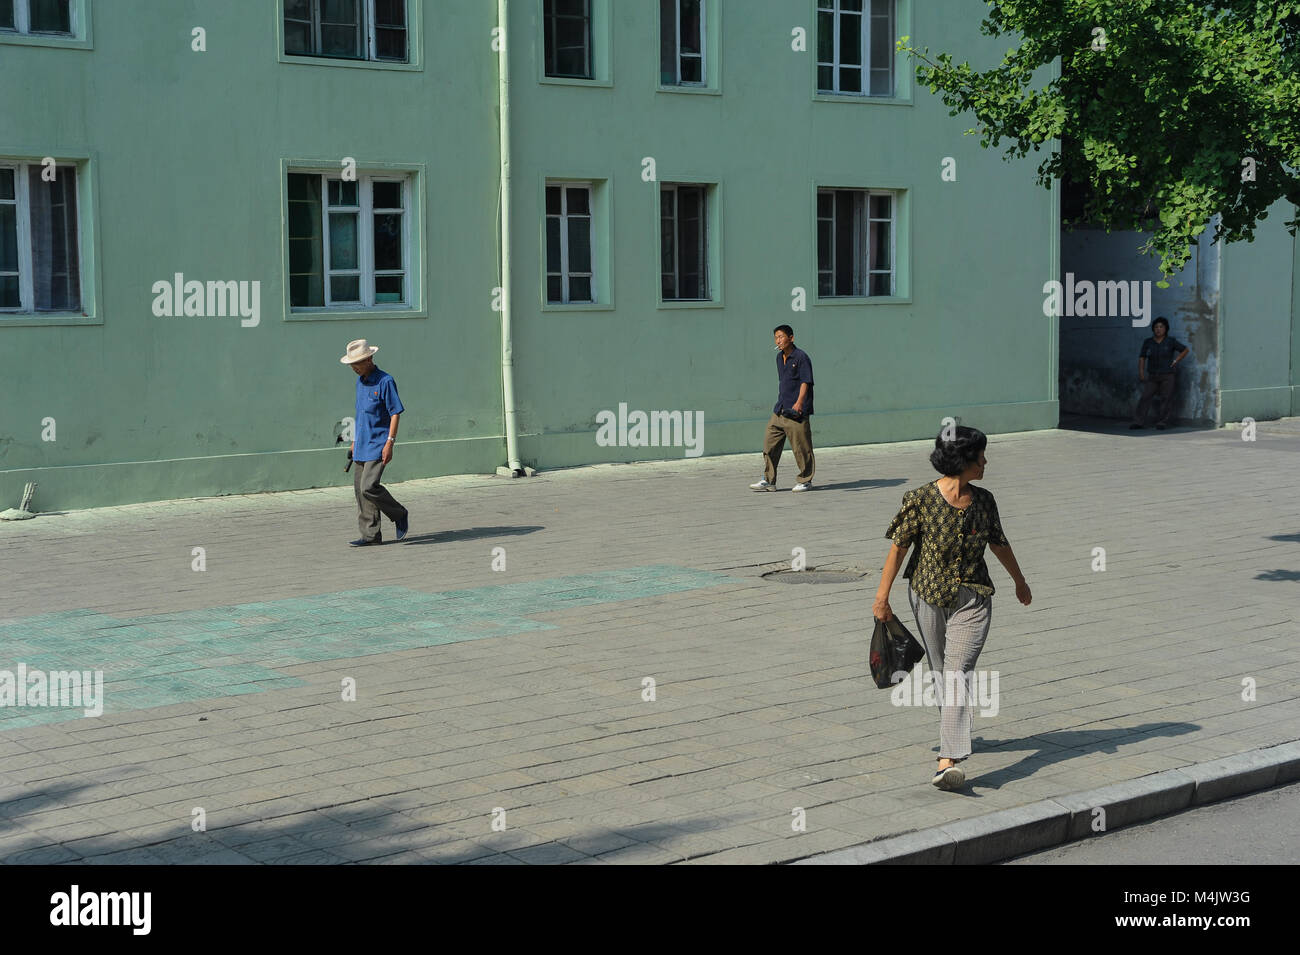 08.08.2012, Pyongyang, North Korea, Asia - Pedestrians walk by residential buildings in central Pyongyang. - Stock Image